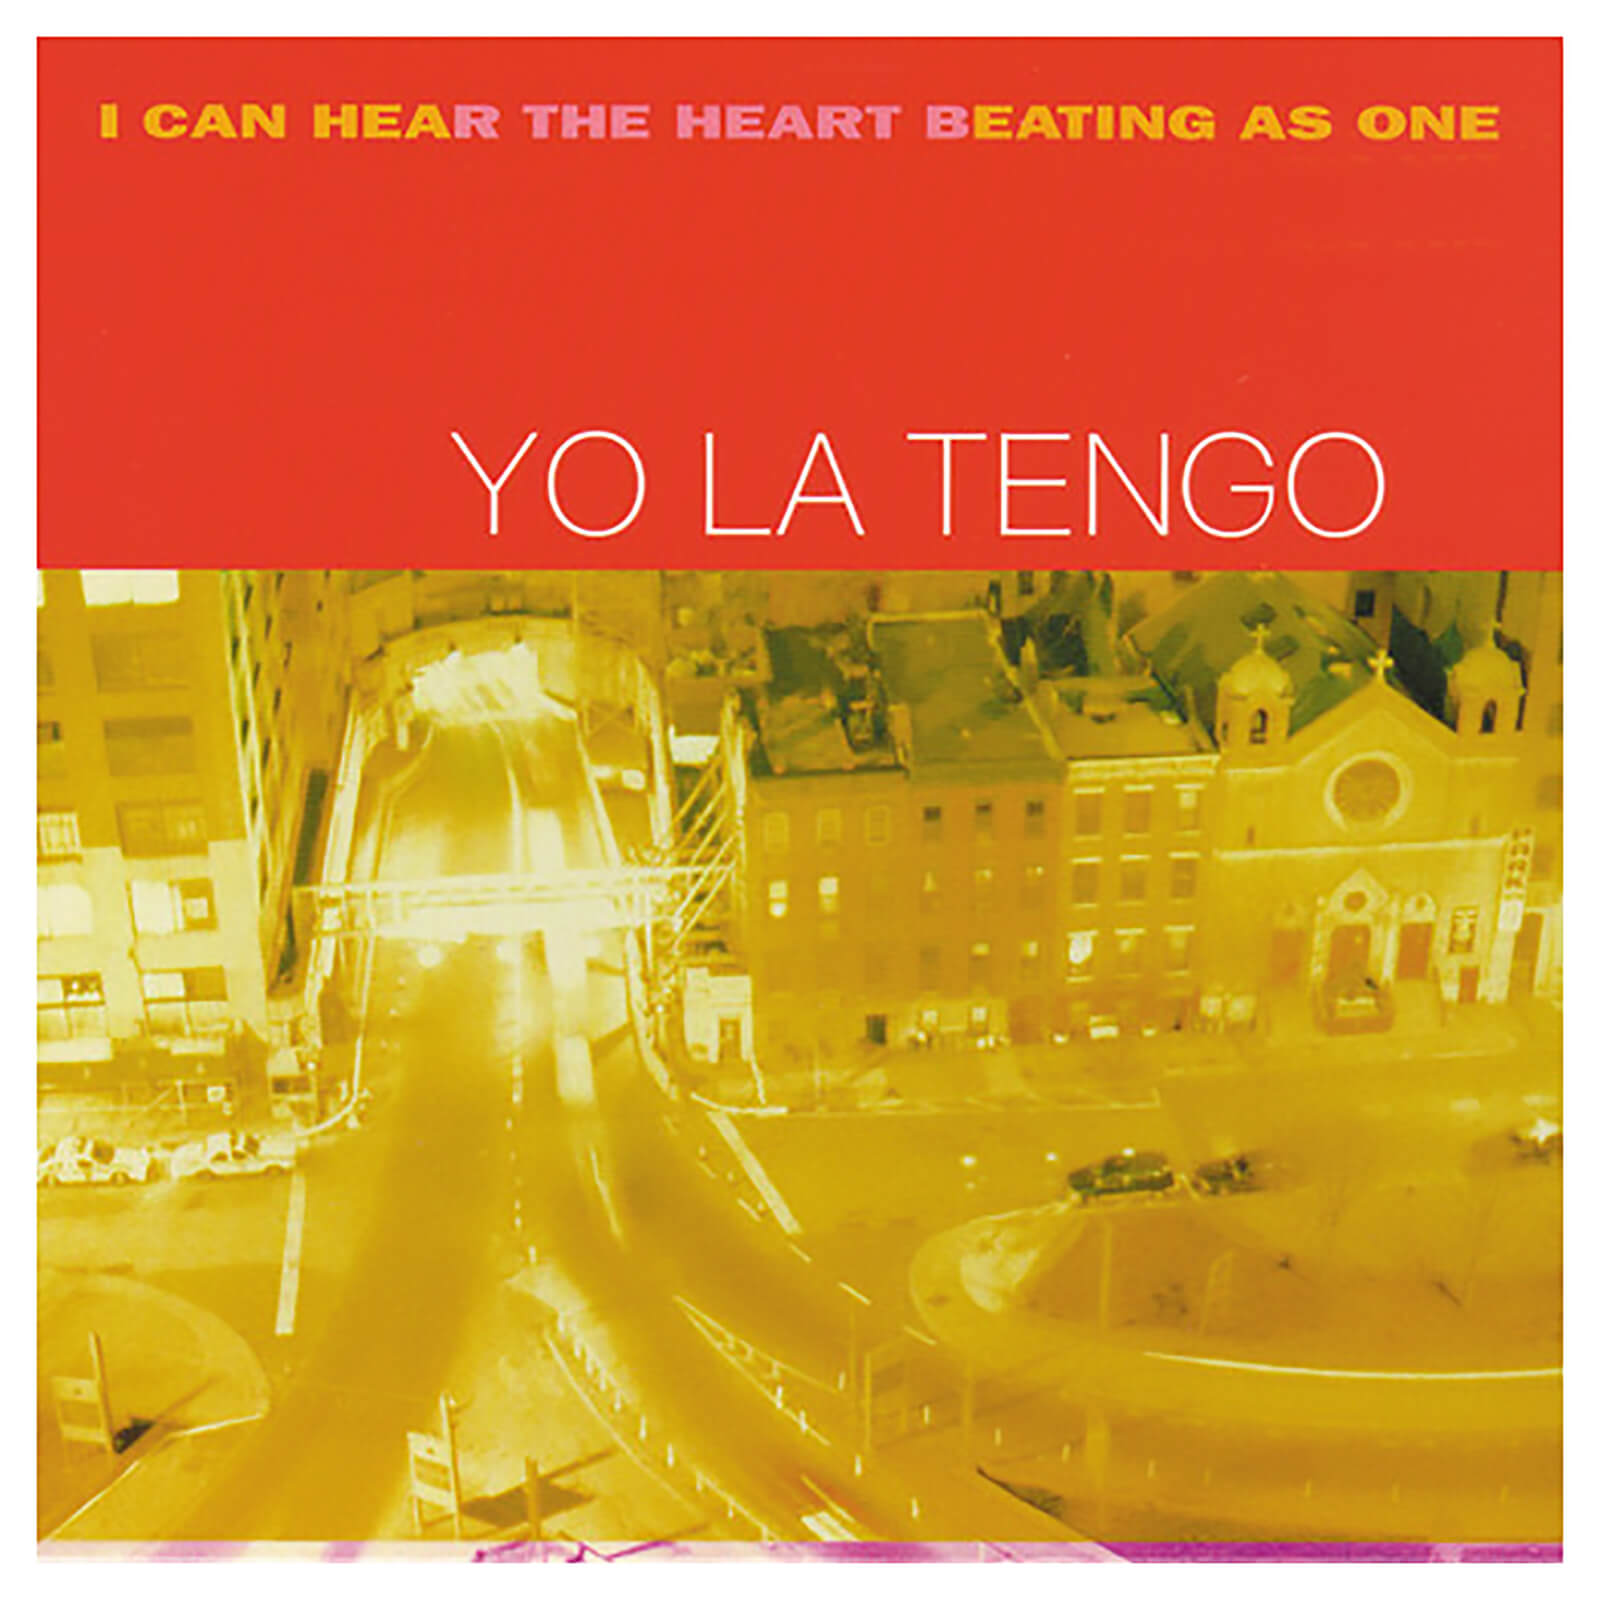 Yo La Tengo - I Can Hear The Heart Beating As One - Vinyl